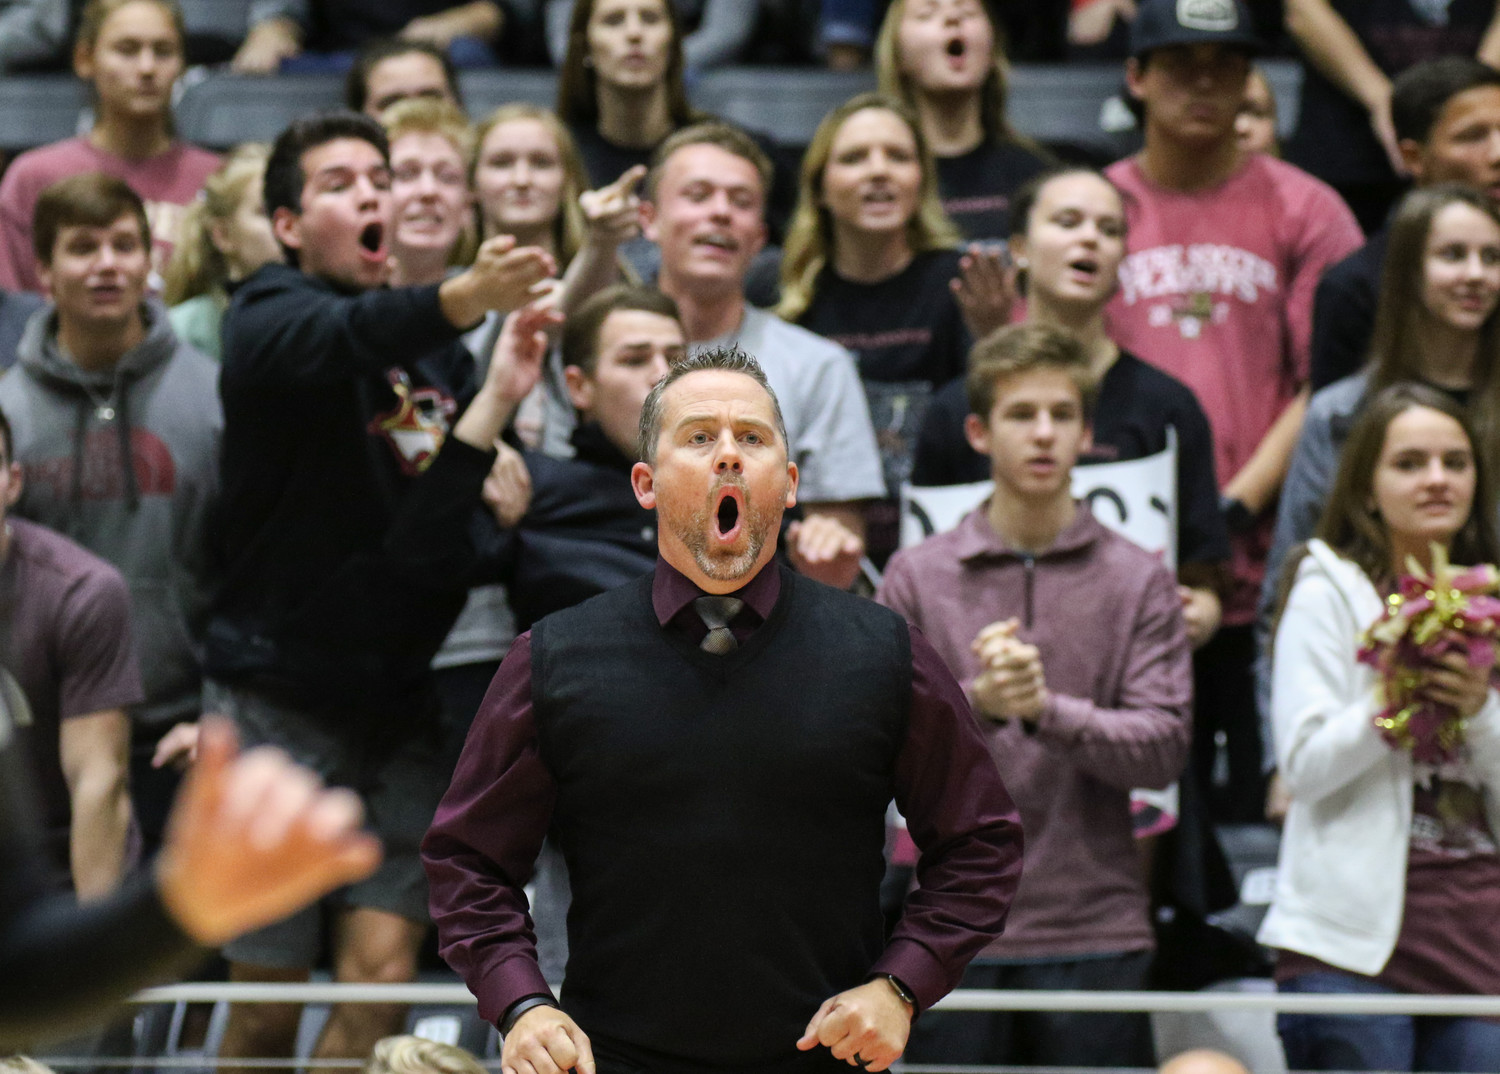 Rouse Raiders head coach Jacob Thompson and the Rouse crowd react to a call during the Class 5A high school volleyball state final between Rouse High School and Prosper High School at Curtis Culwell Center in Garland, Texas, on November 18, 2017. Prosper won the match in five sets, (25-18, 21-25, 18-25, 25, 23, 16-14) to win the 5A state championship.